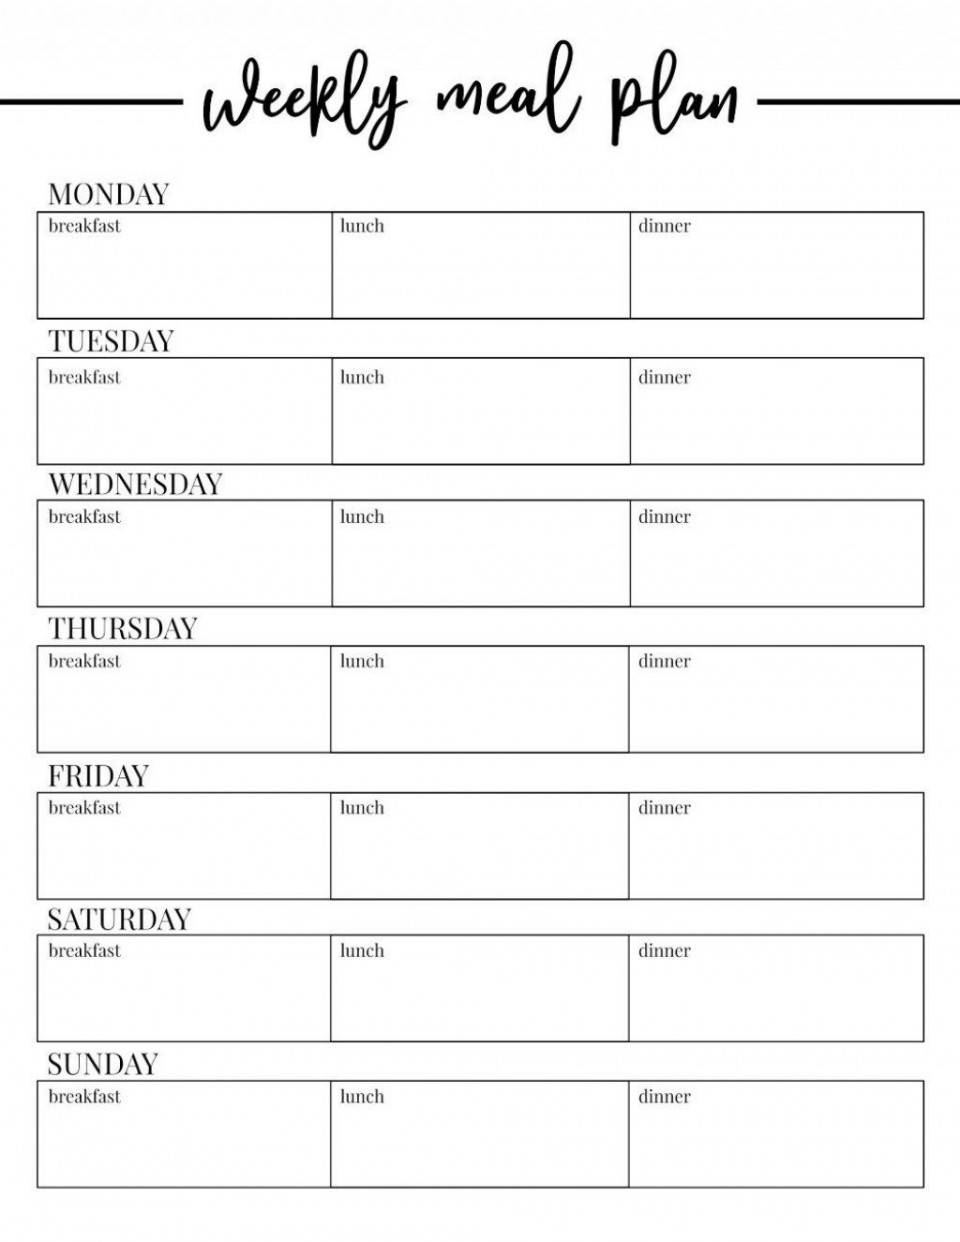 005 Unusual Excel Weekly Meal Planner Template Image  With Grocery List Downloadable960